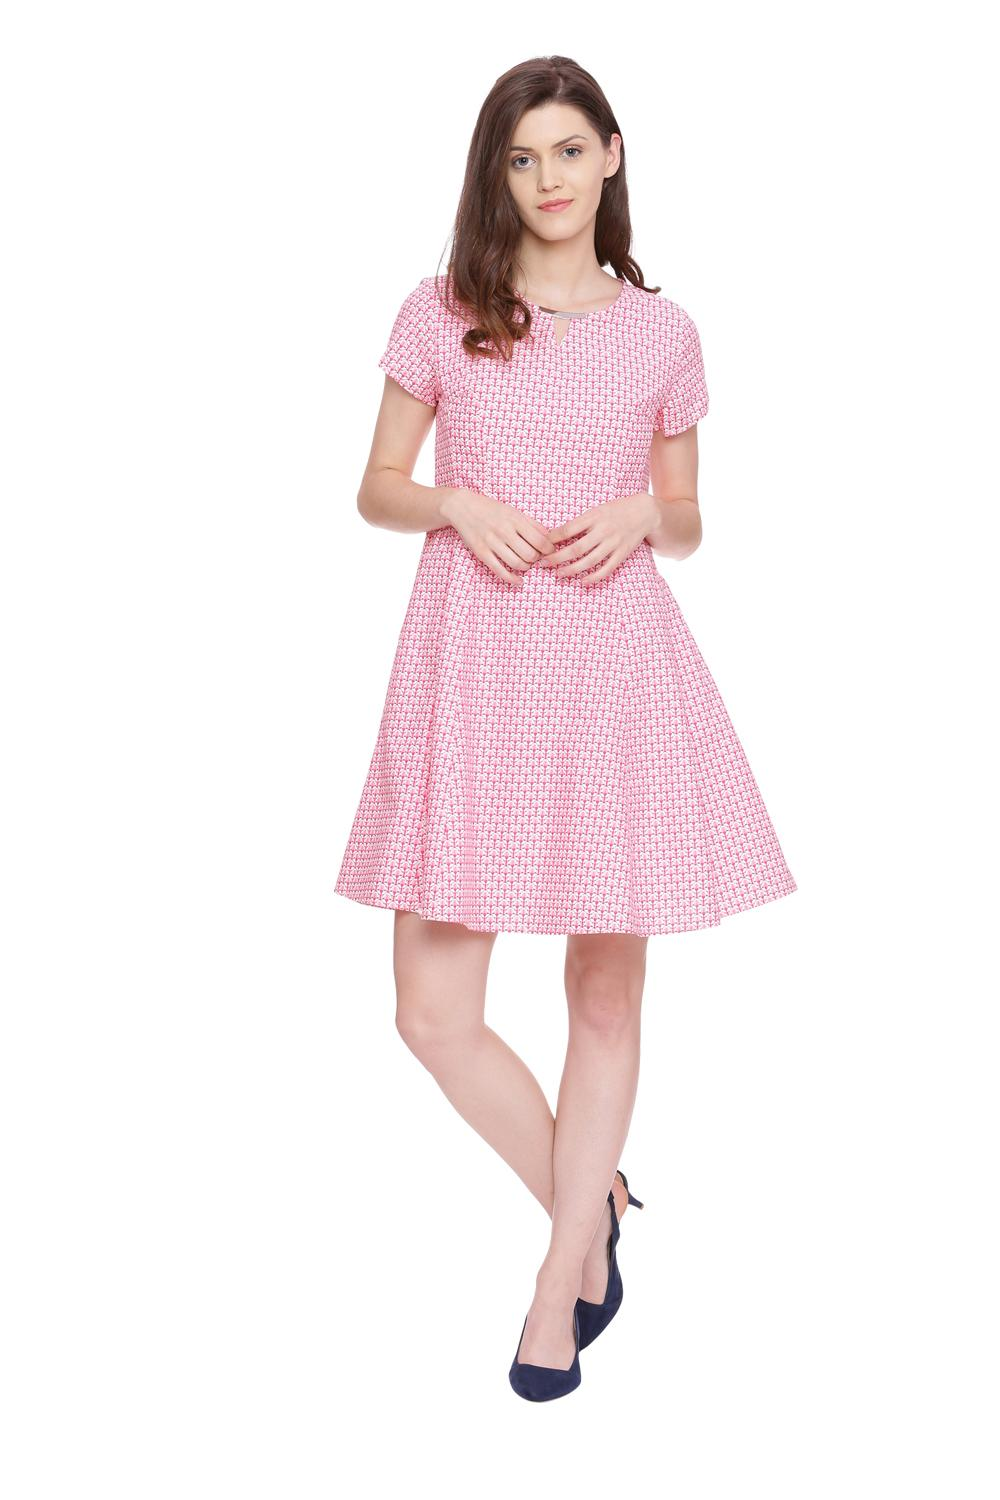 10e762401898 Solly Dresses, Allen Solly Pink Dress for Women at Allensolly.com